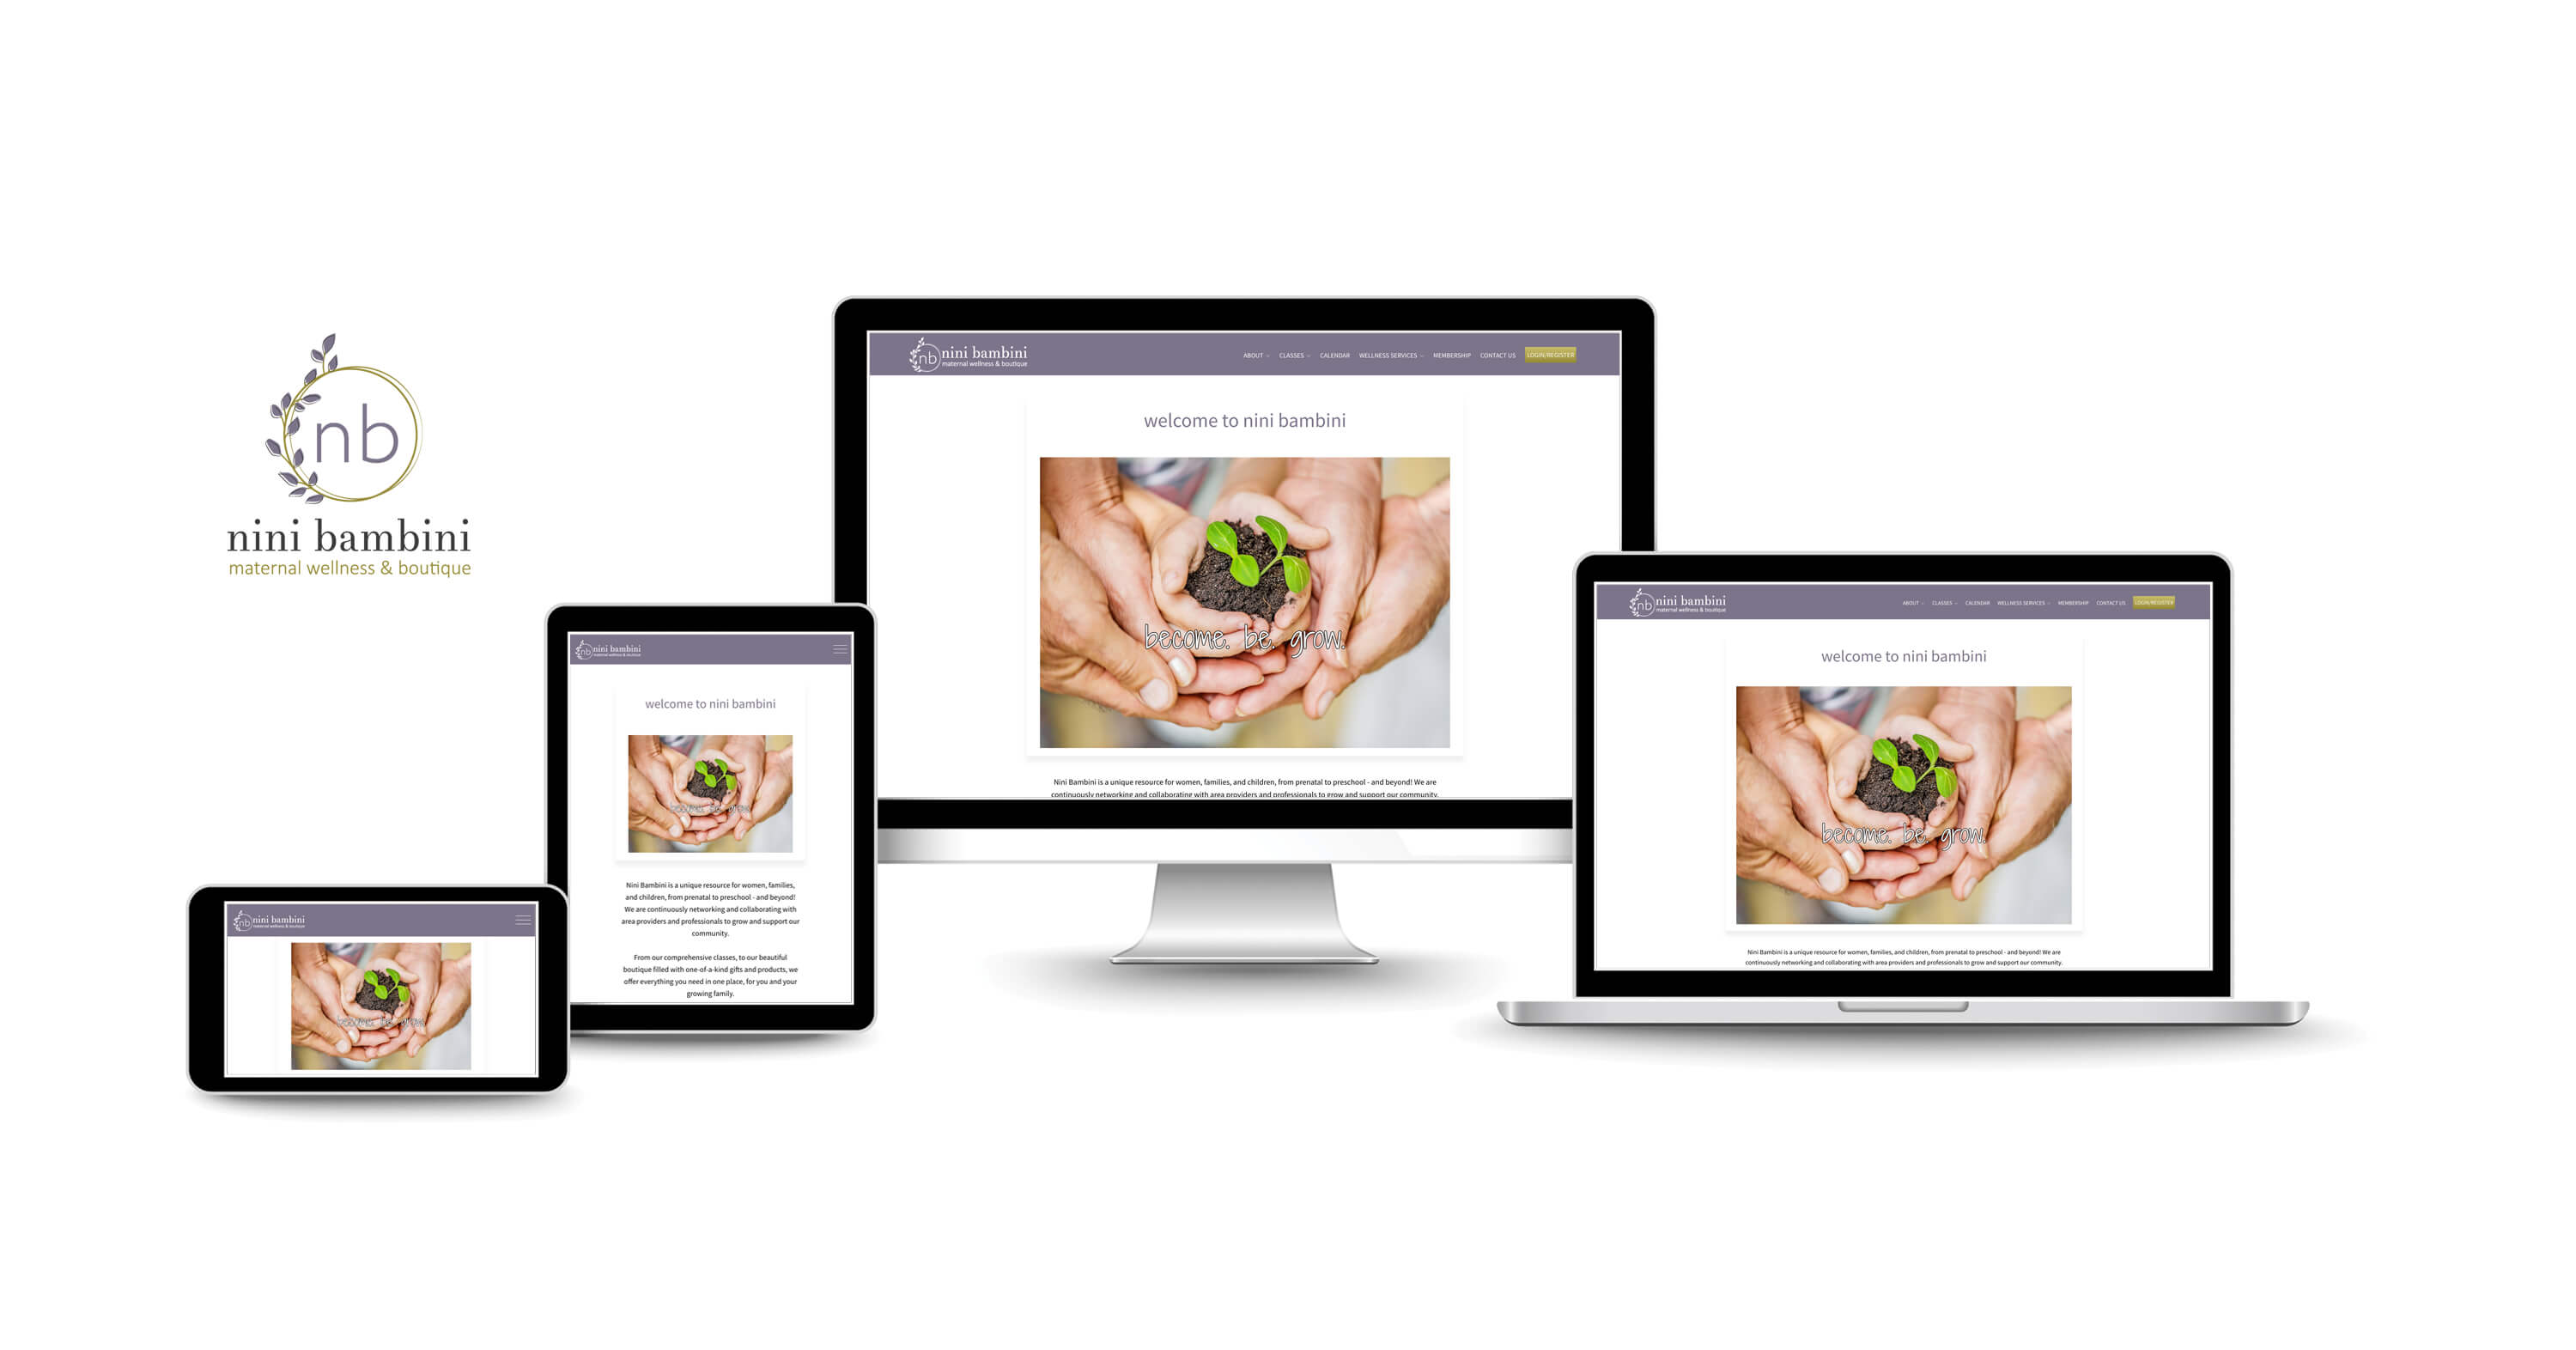 website design services for natural wellness companies